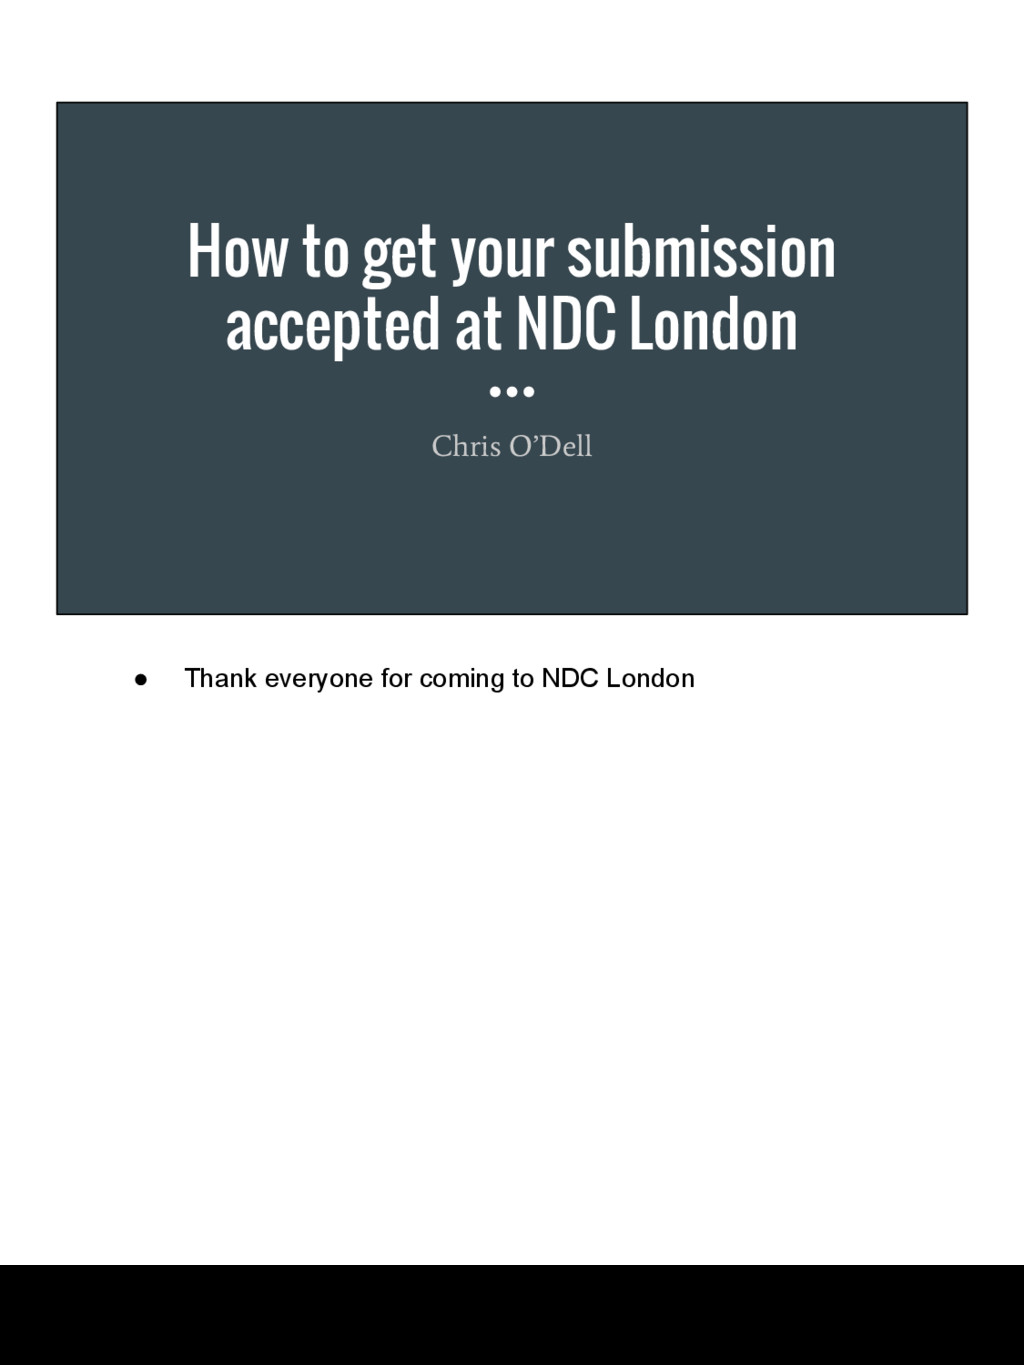 How to get your submission accepted at NDC Lond...